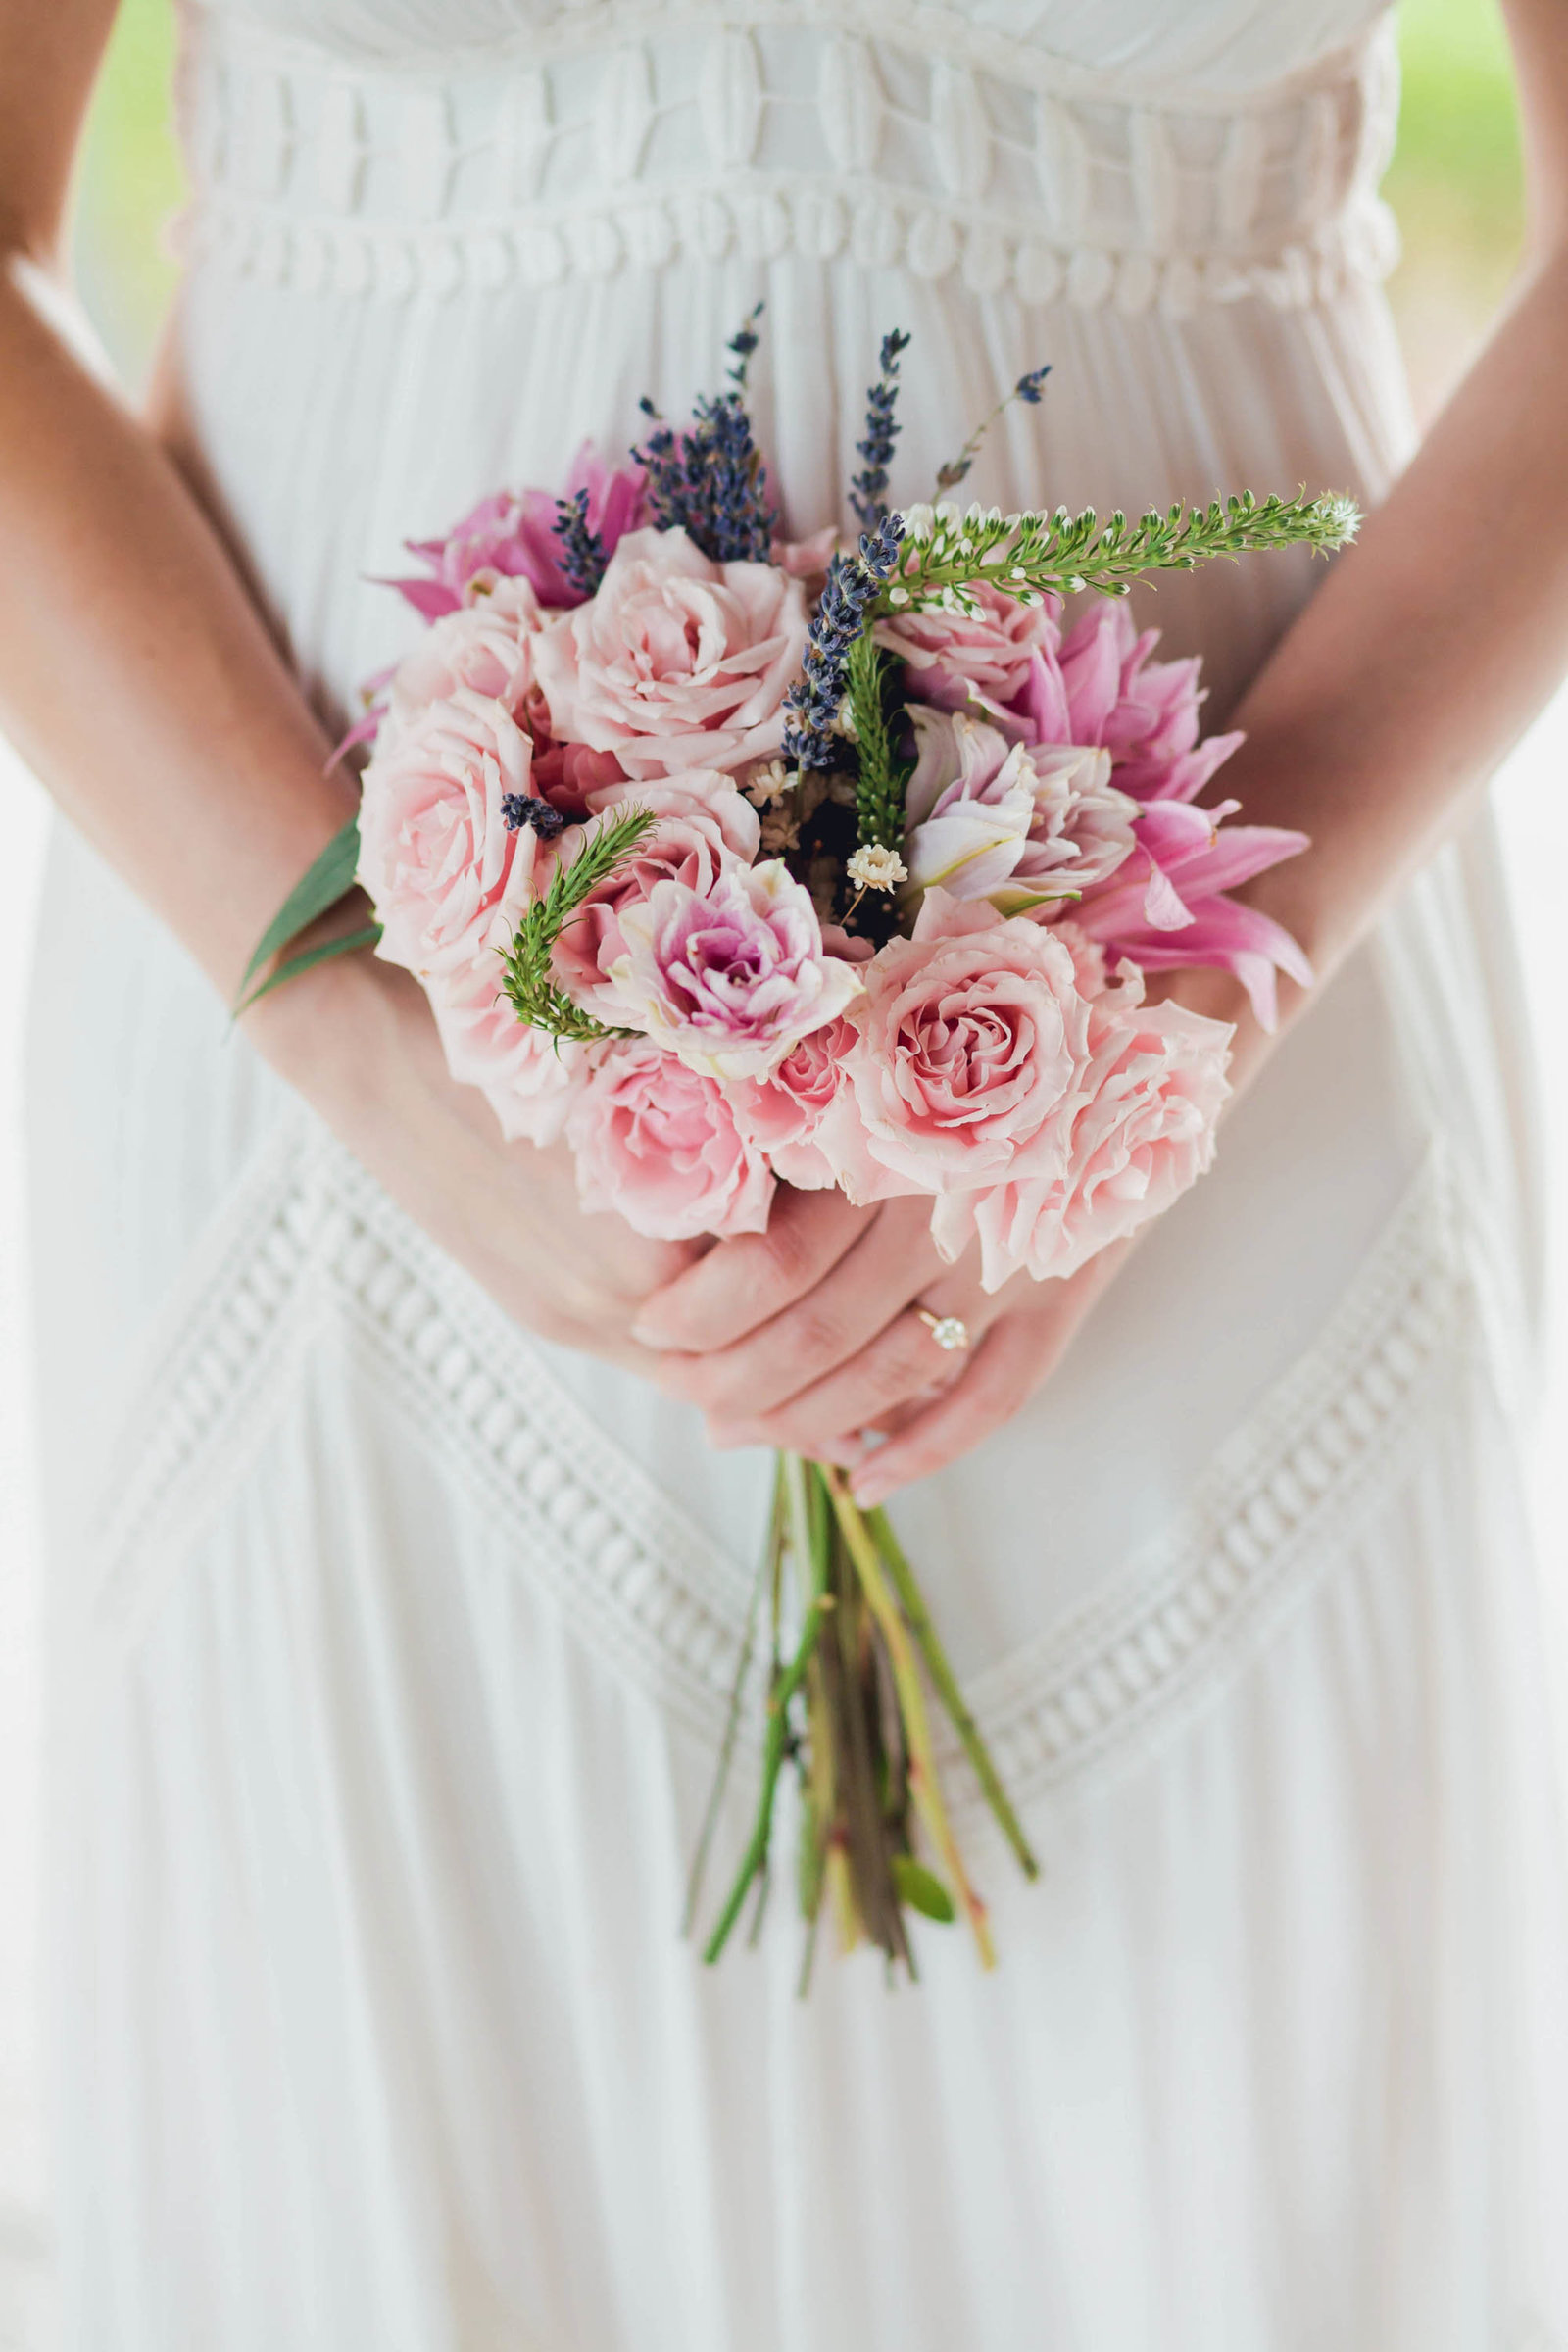 bouquet-bridal-spring-lookbook-pepper-plantation-black-white-blush-makeup-kate-timbers-photography107